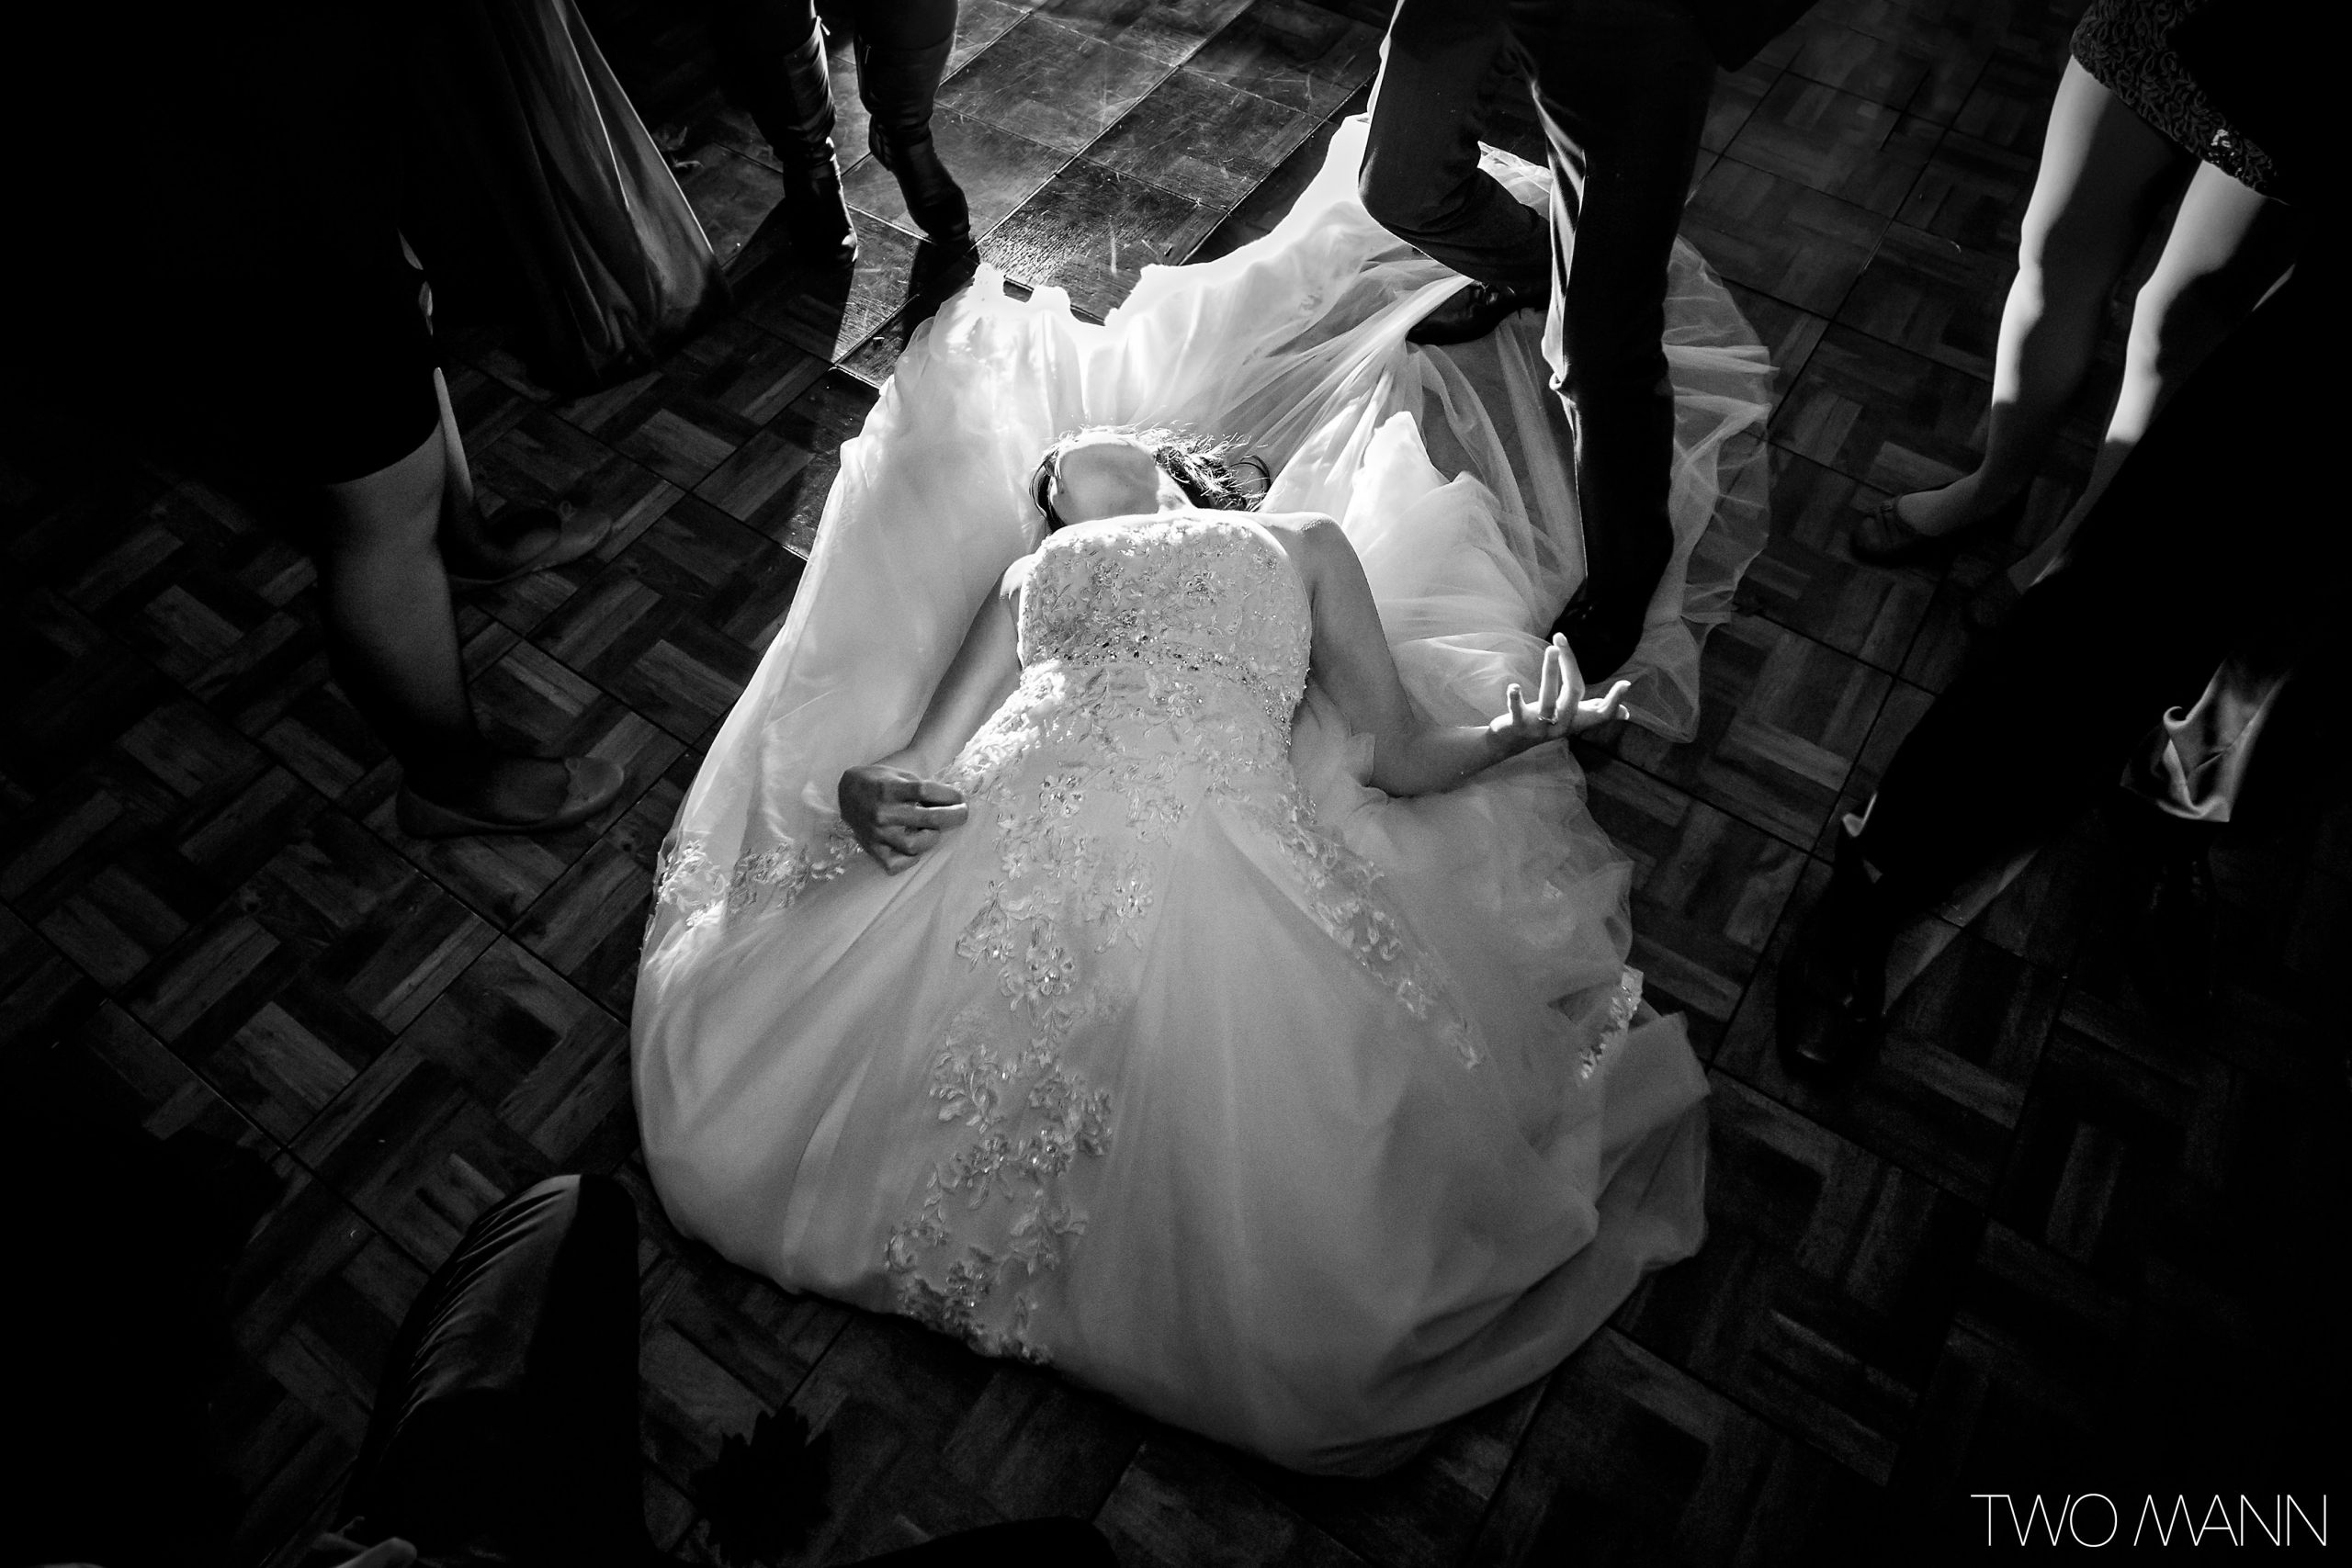 a bride lying on her dress train during a dance